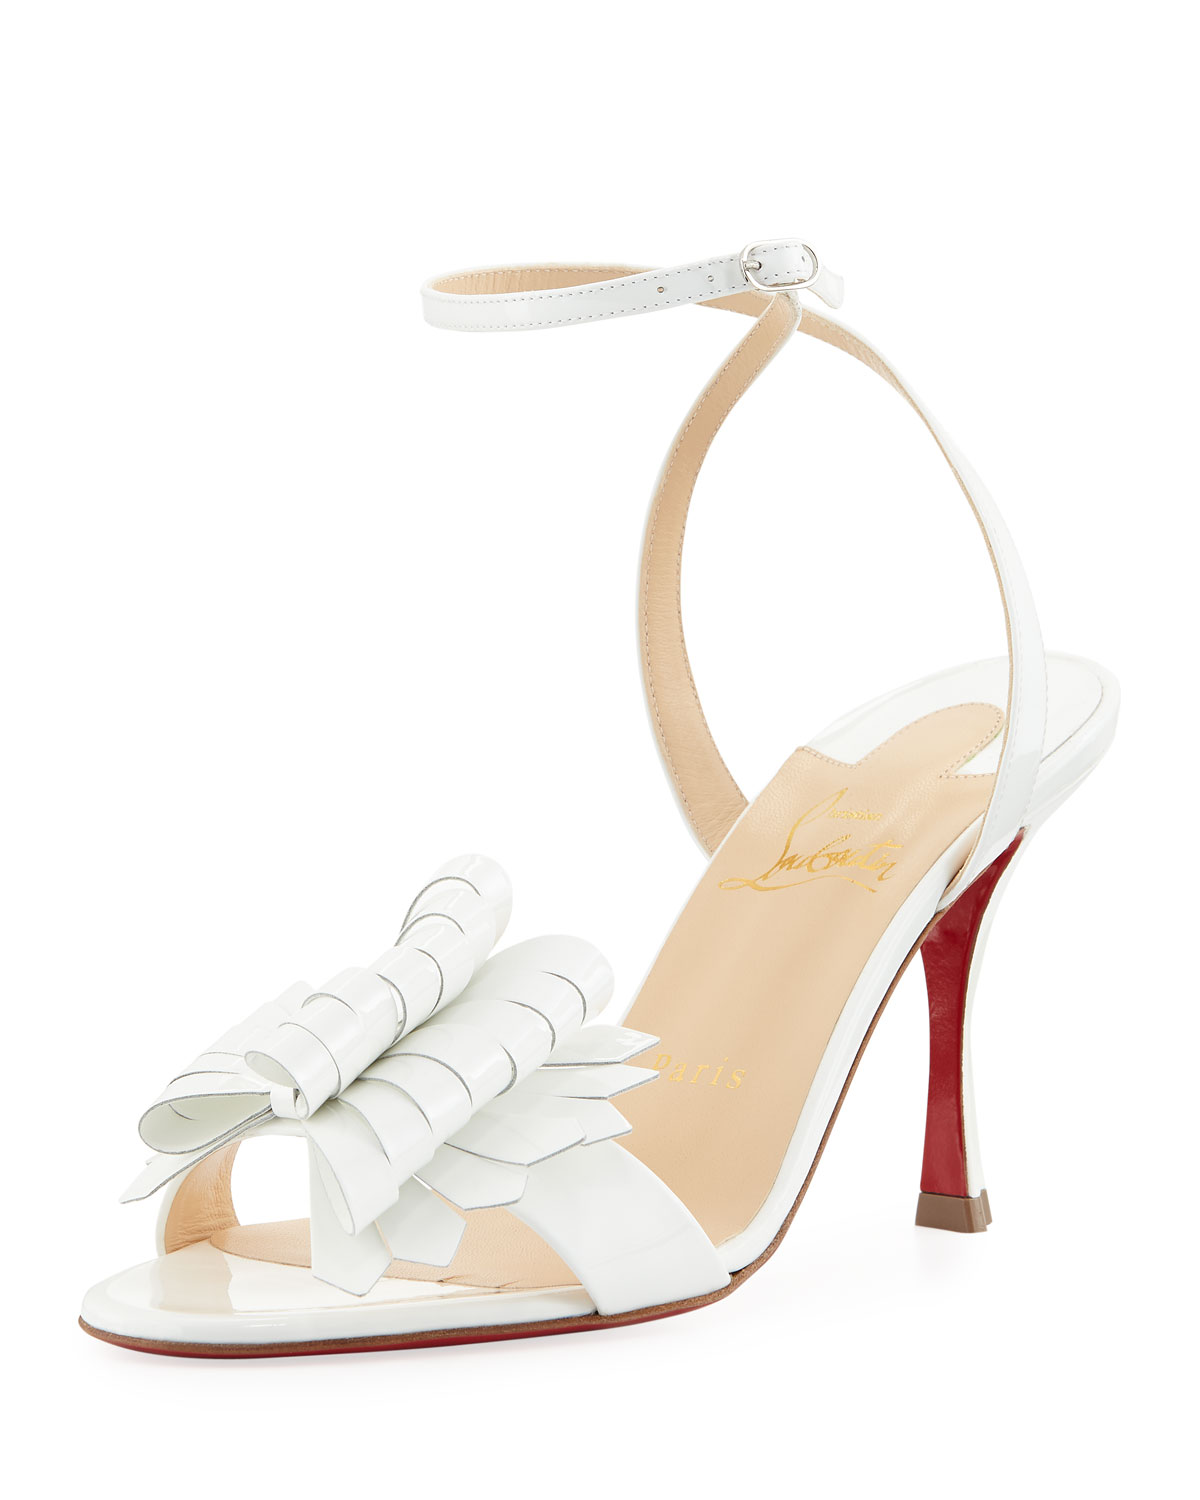 7b410b4d3ee Christian Louboutin Miss Valois 85 Red Sole Sandal